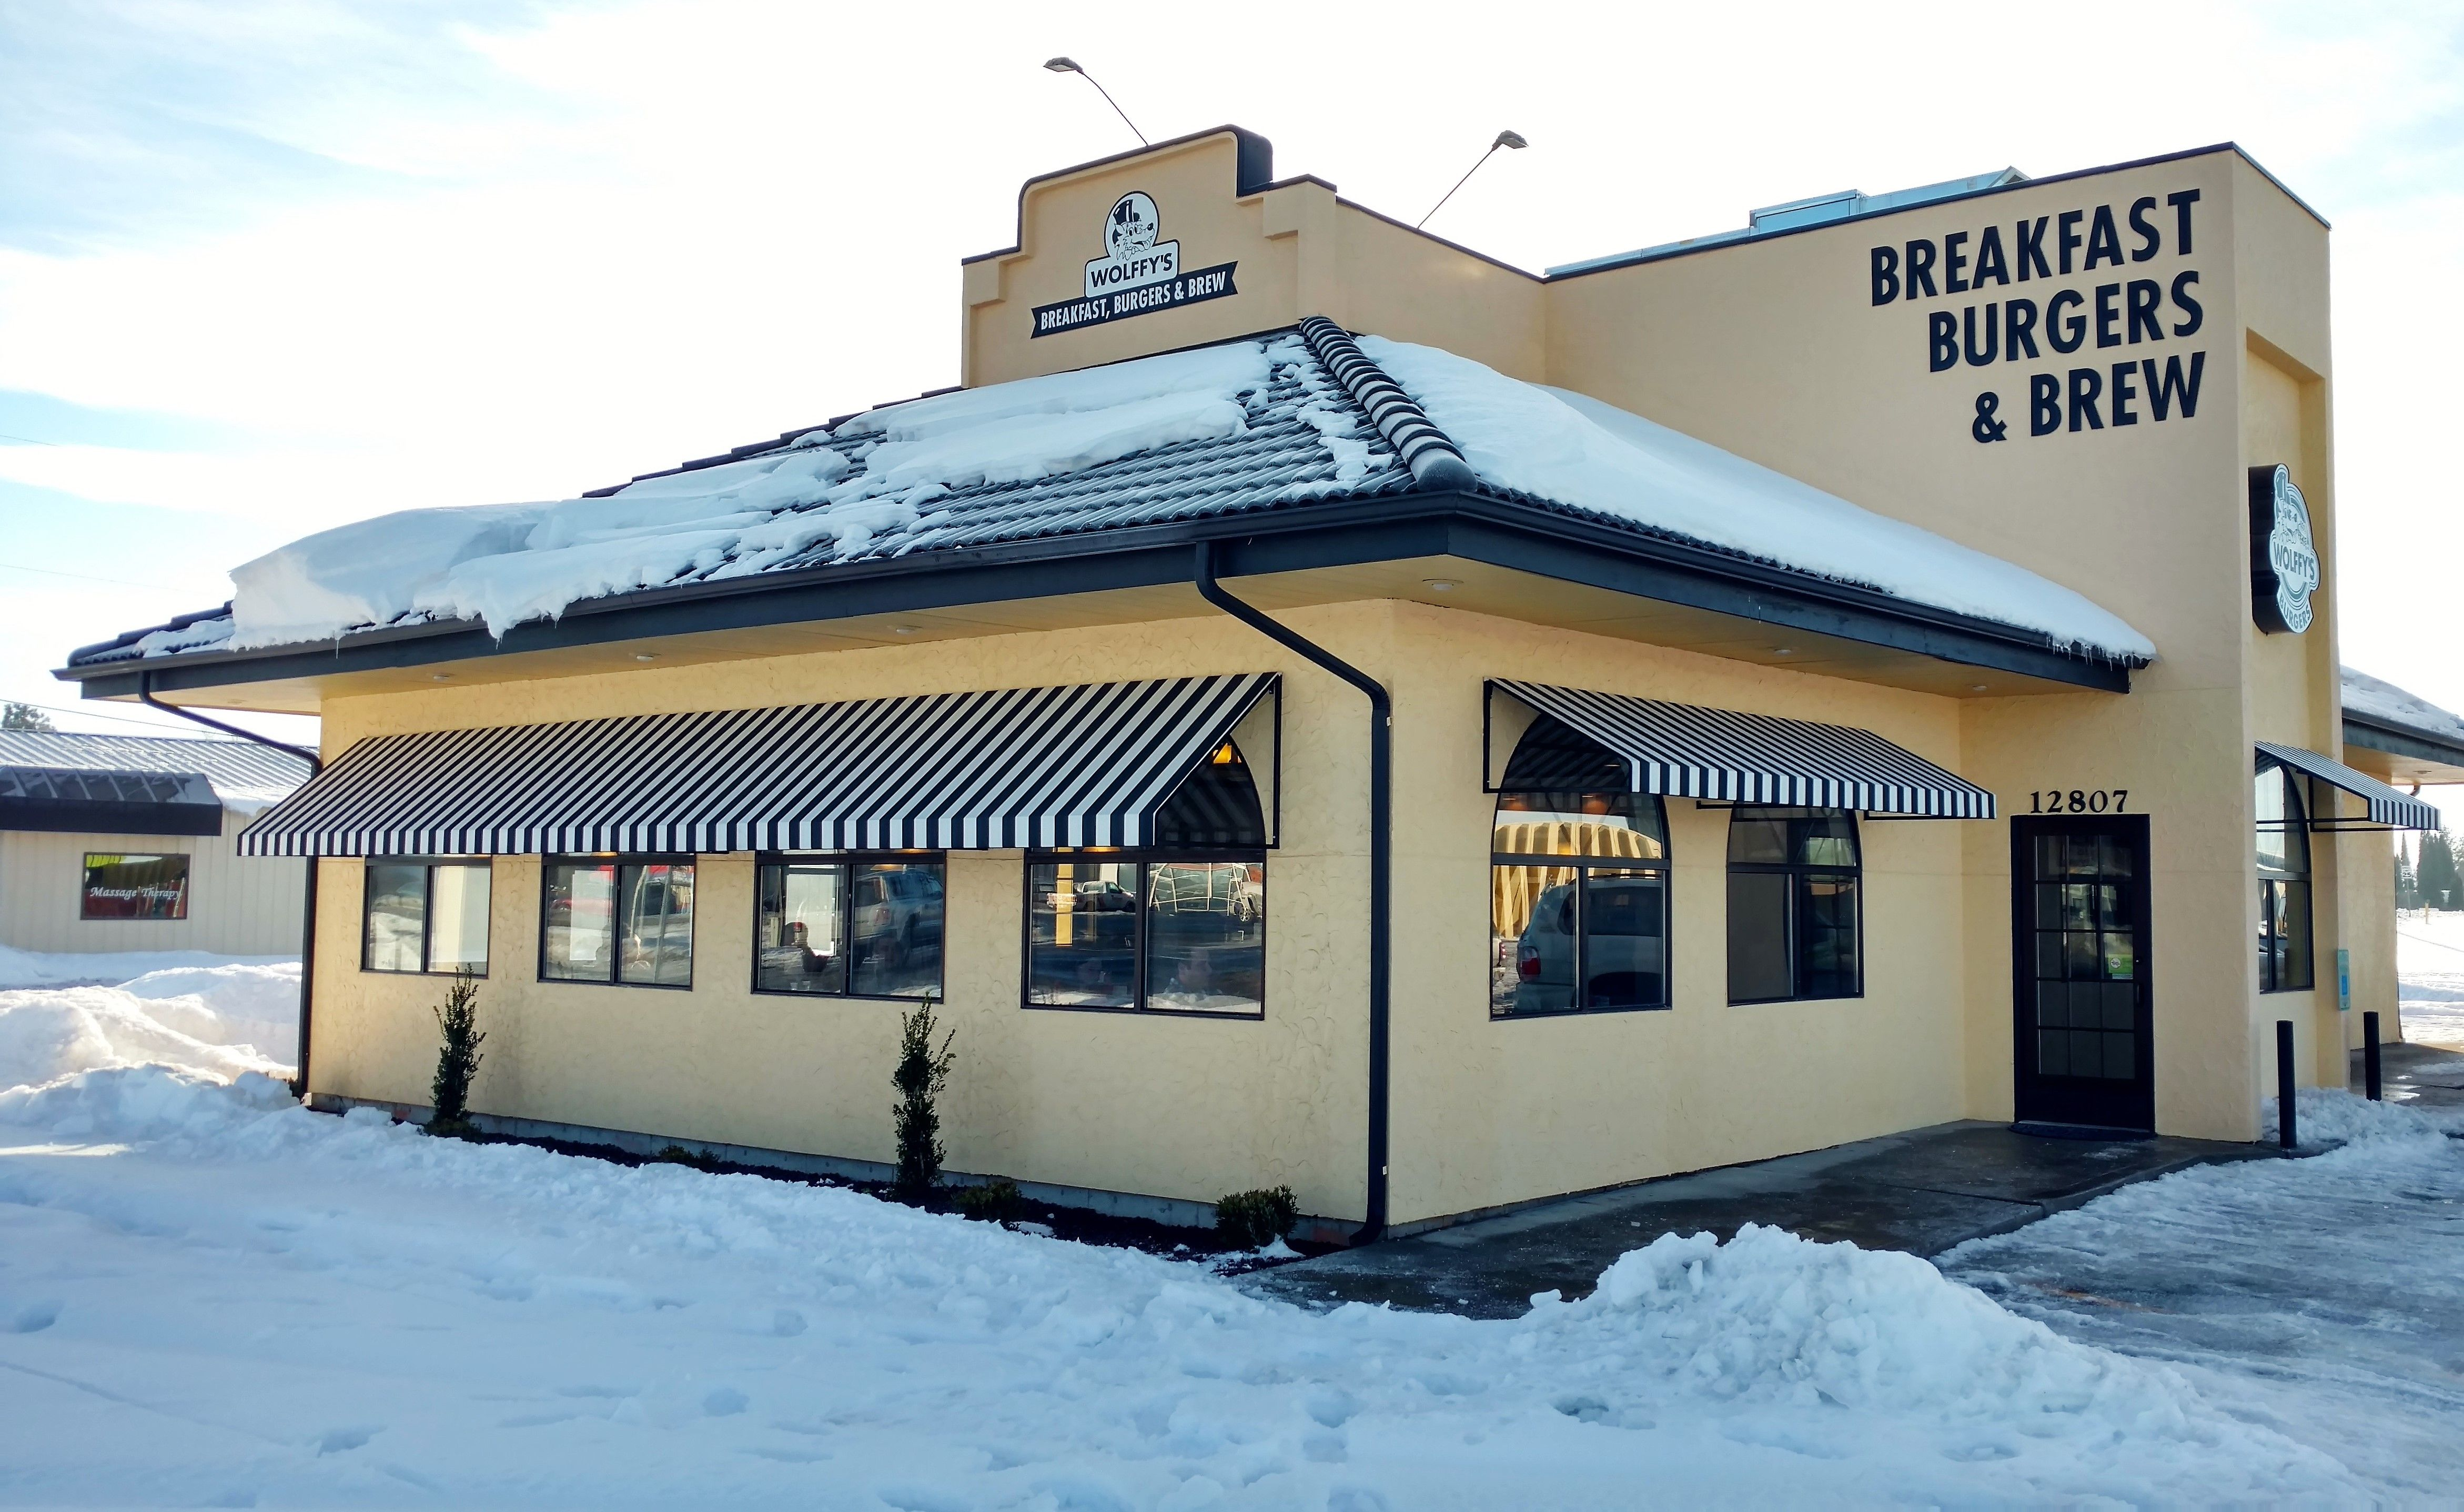 Wollfy S Breakfast Burgers Brews Spokane Wa Www Vestissystems Com With Images Residential Awnings Canopy Awning